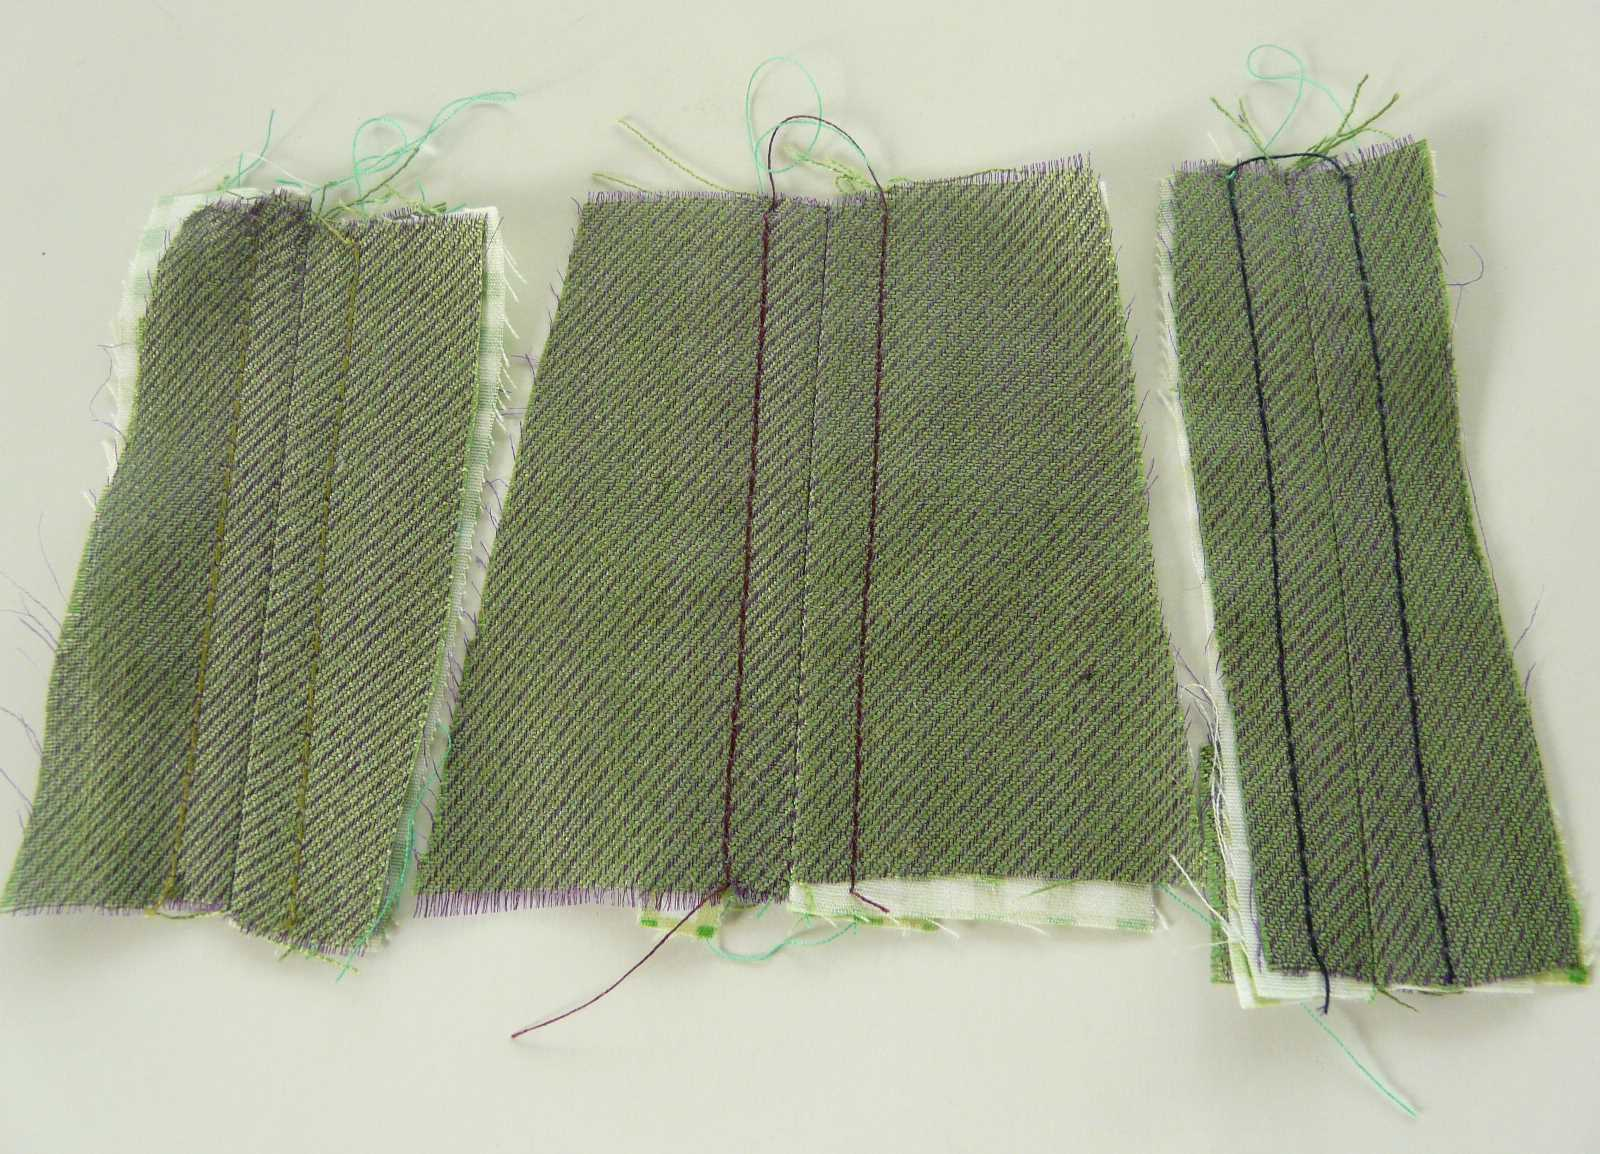 03 Topstitch test